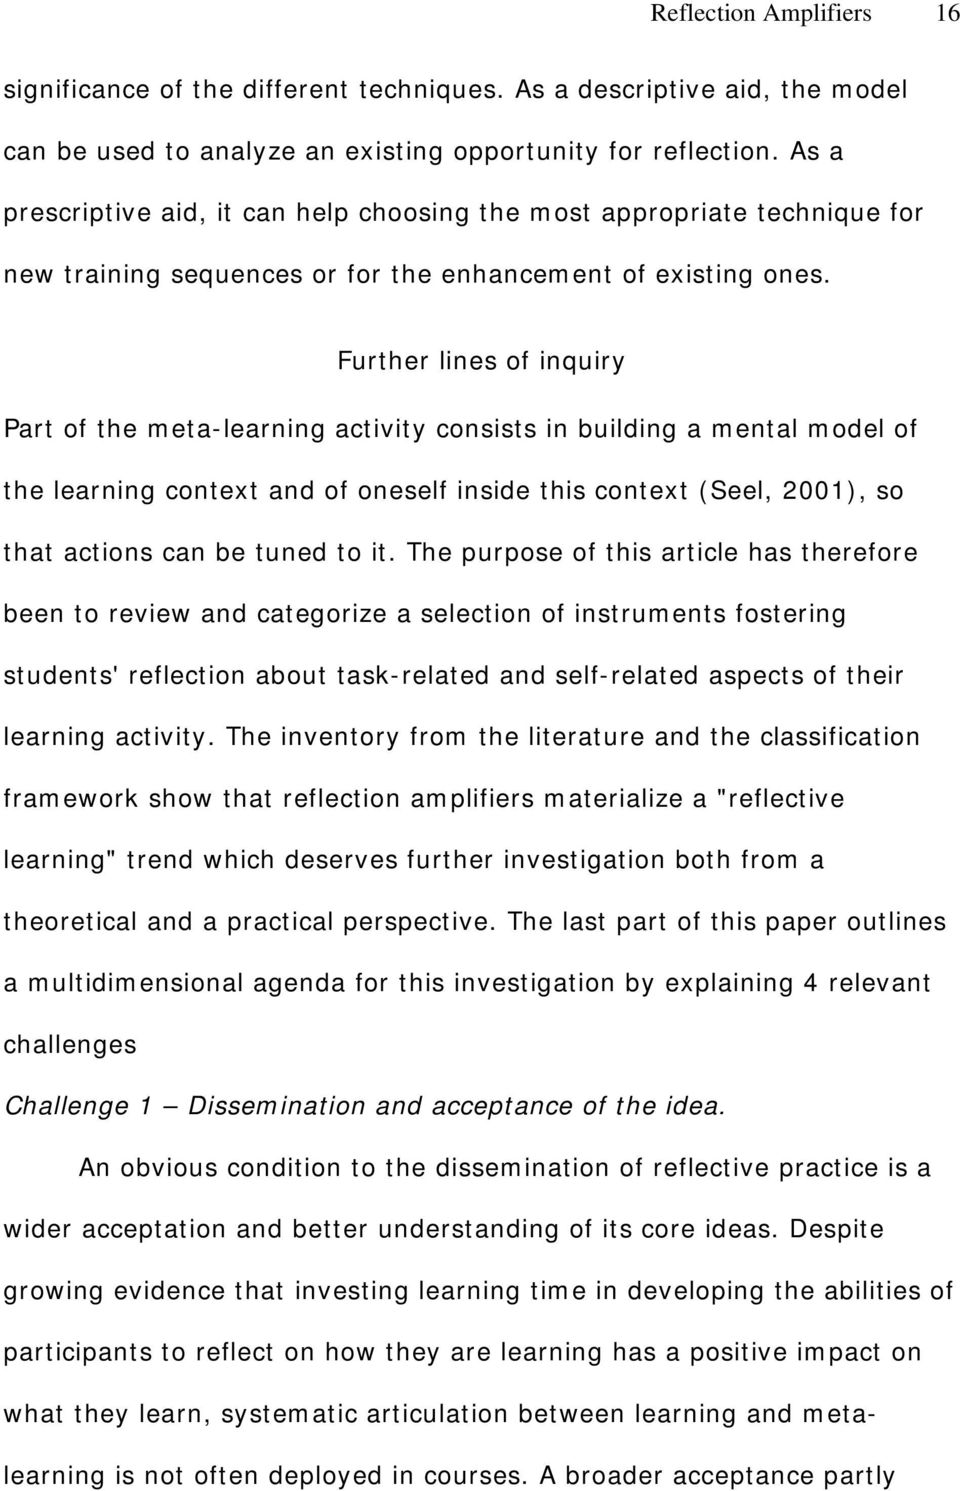 Further lines of inquiry Part of the meta-learning activity consists in building a mental model of the learning context and of oneself inside this context (Seel, 2001), so that actions can be tuned